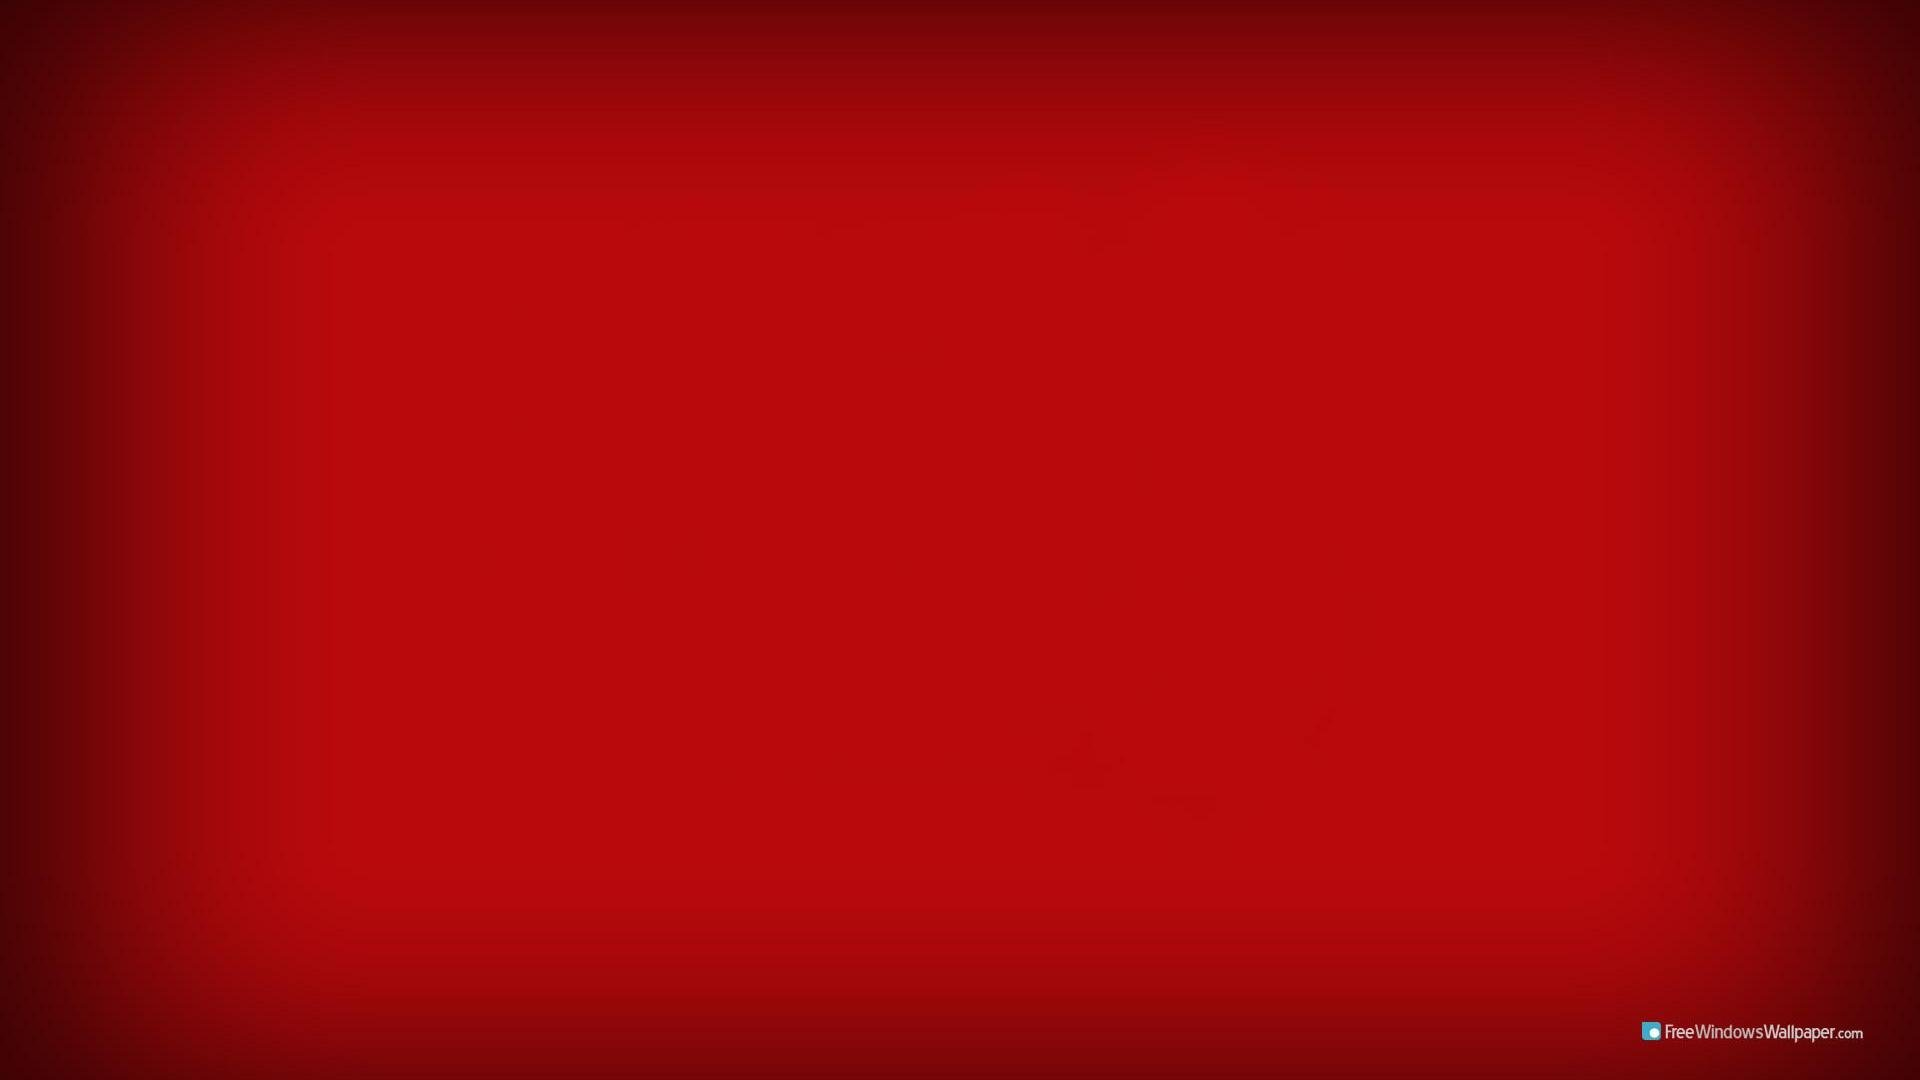 wallpaper red solid wallpapers solidred 1920x1080